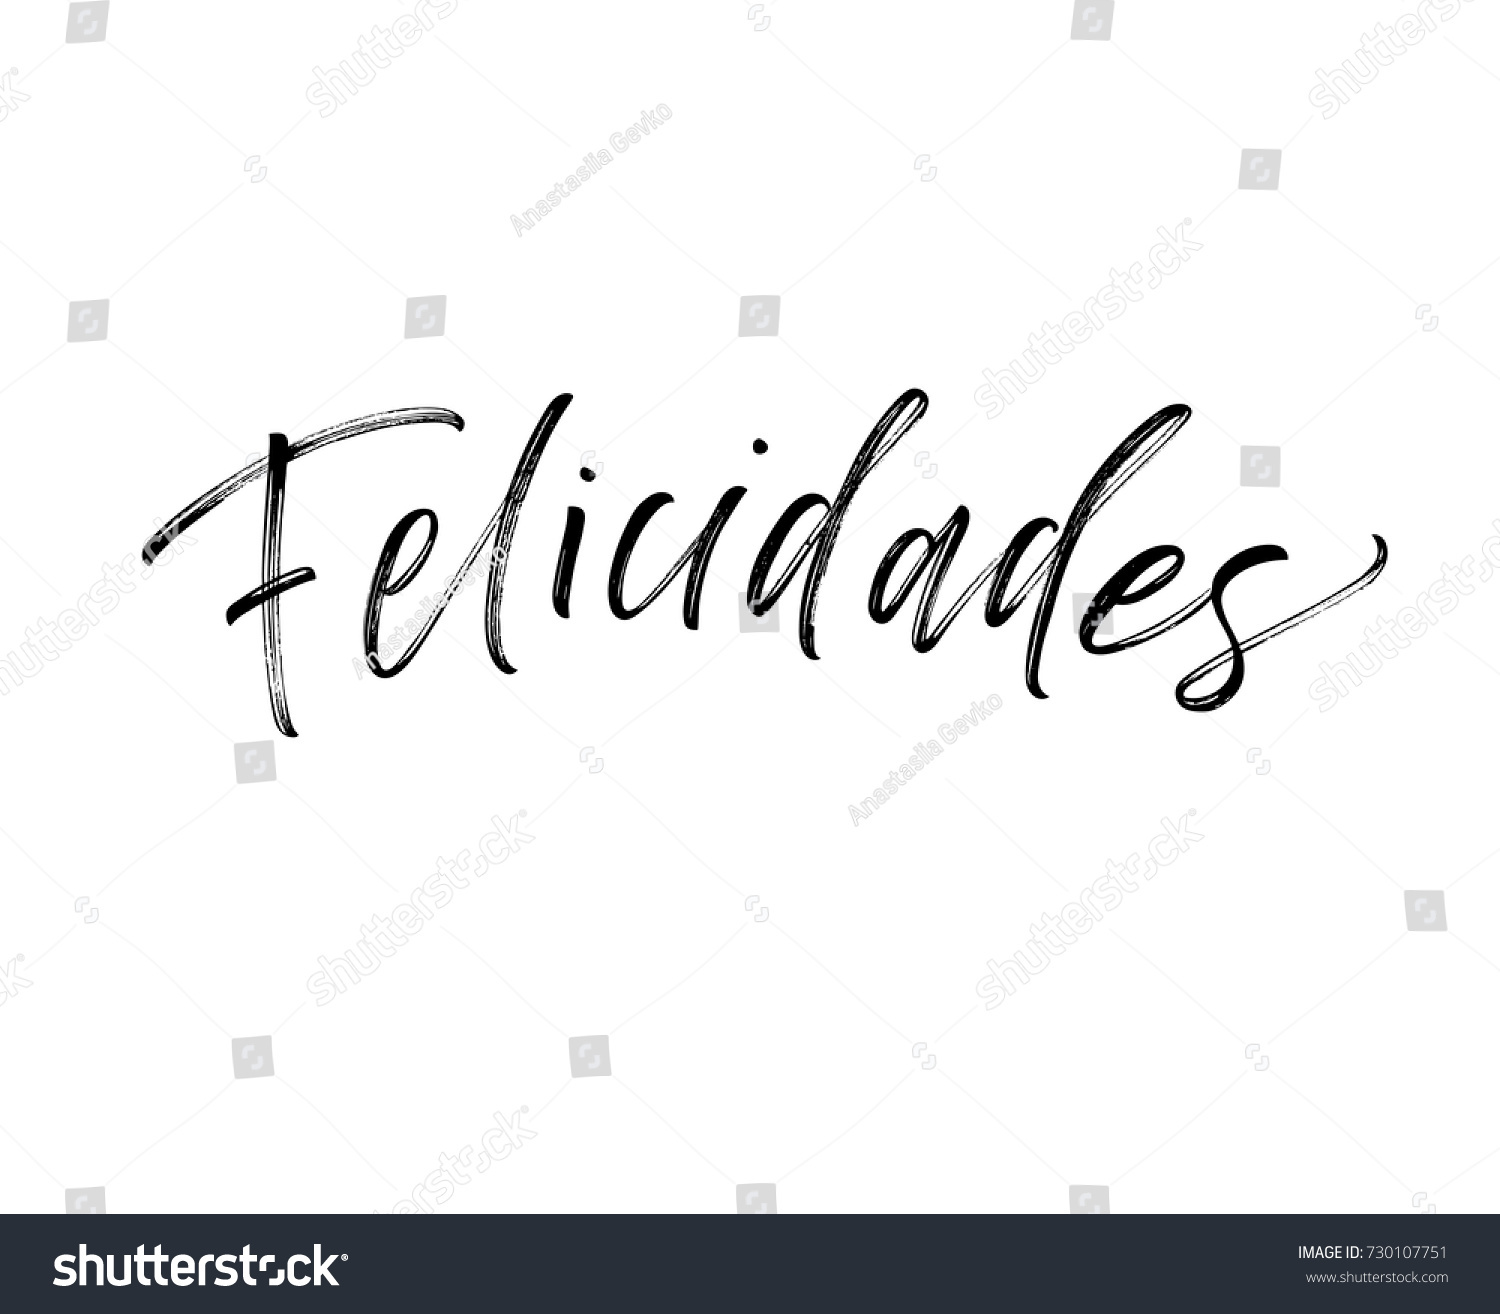 Felicidades Spanish Phrase Congratulations Spanish Greeting Stock